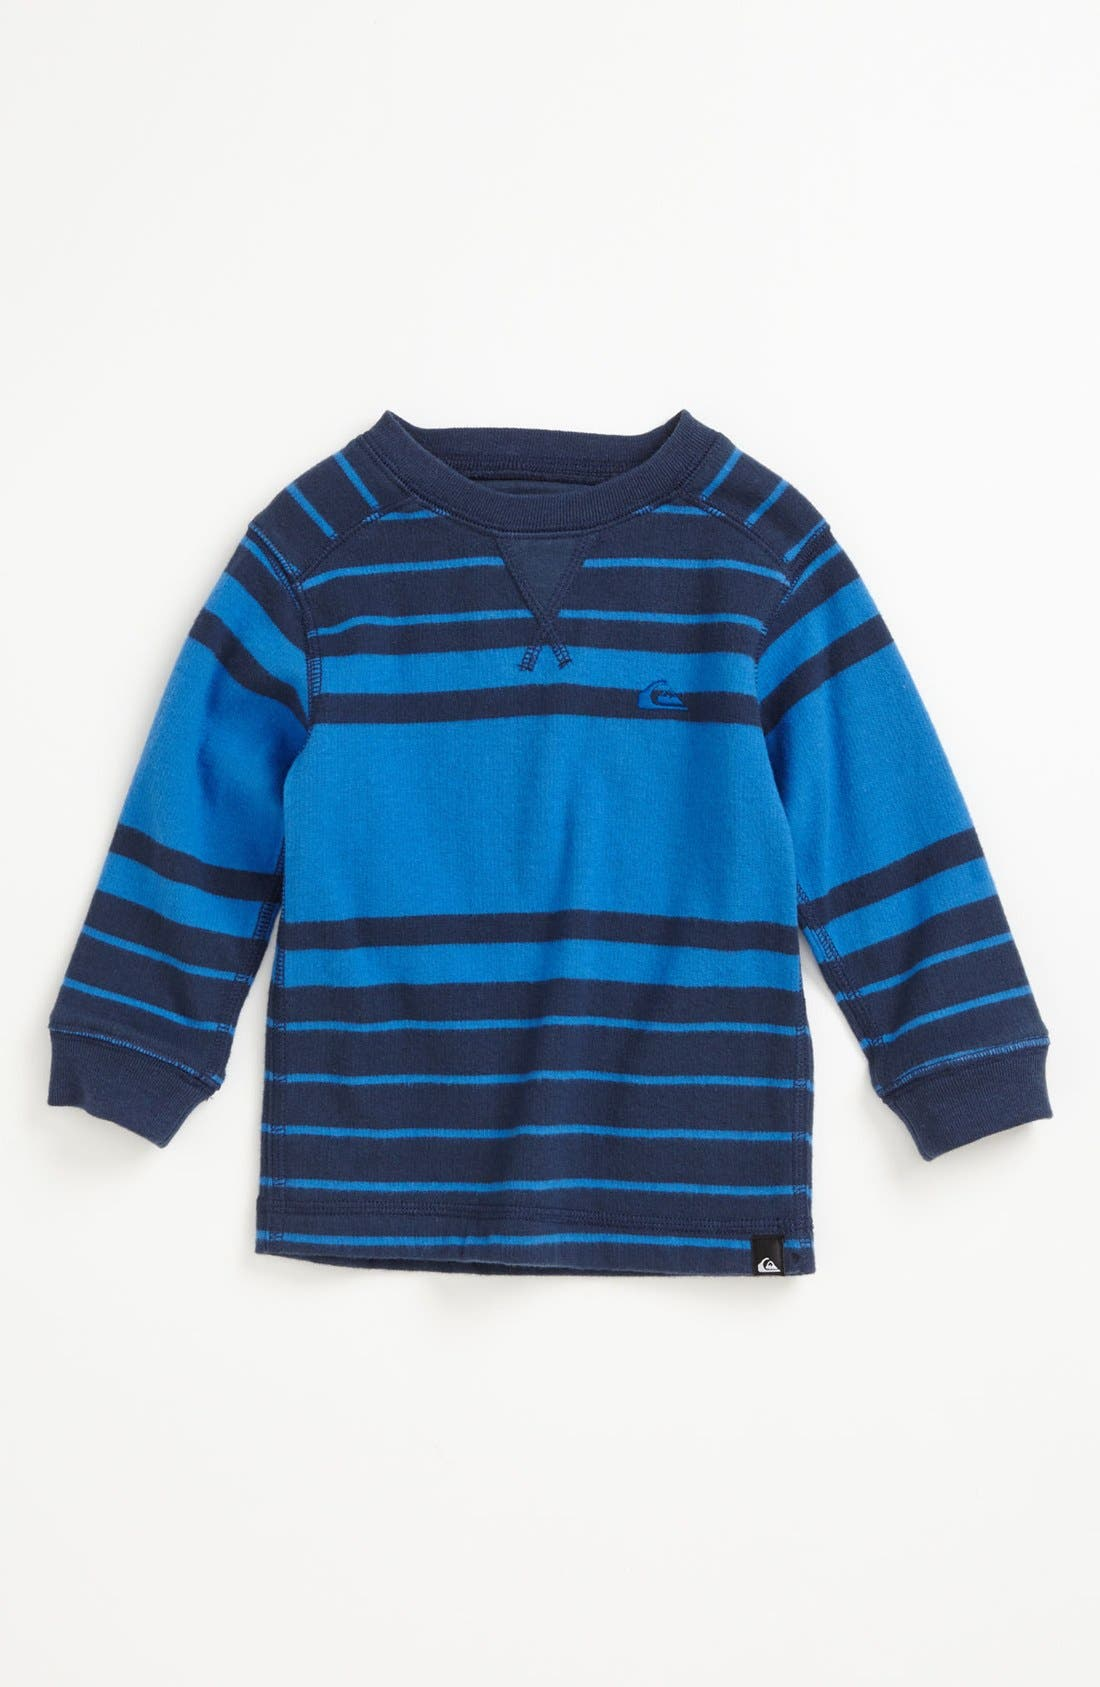 Main Image - Quiksilver 'Snit' Stripe Shirt (Toddler Boys)